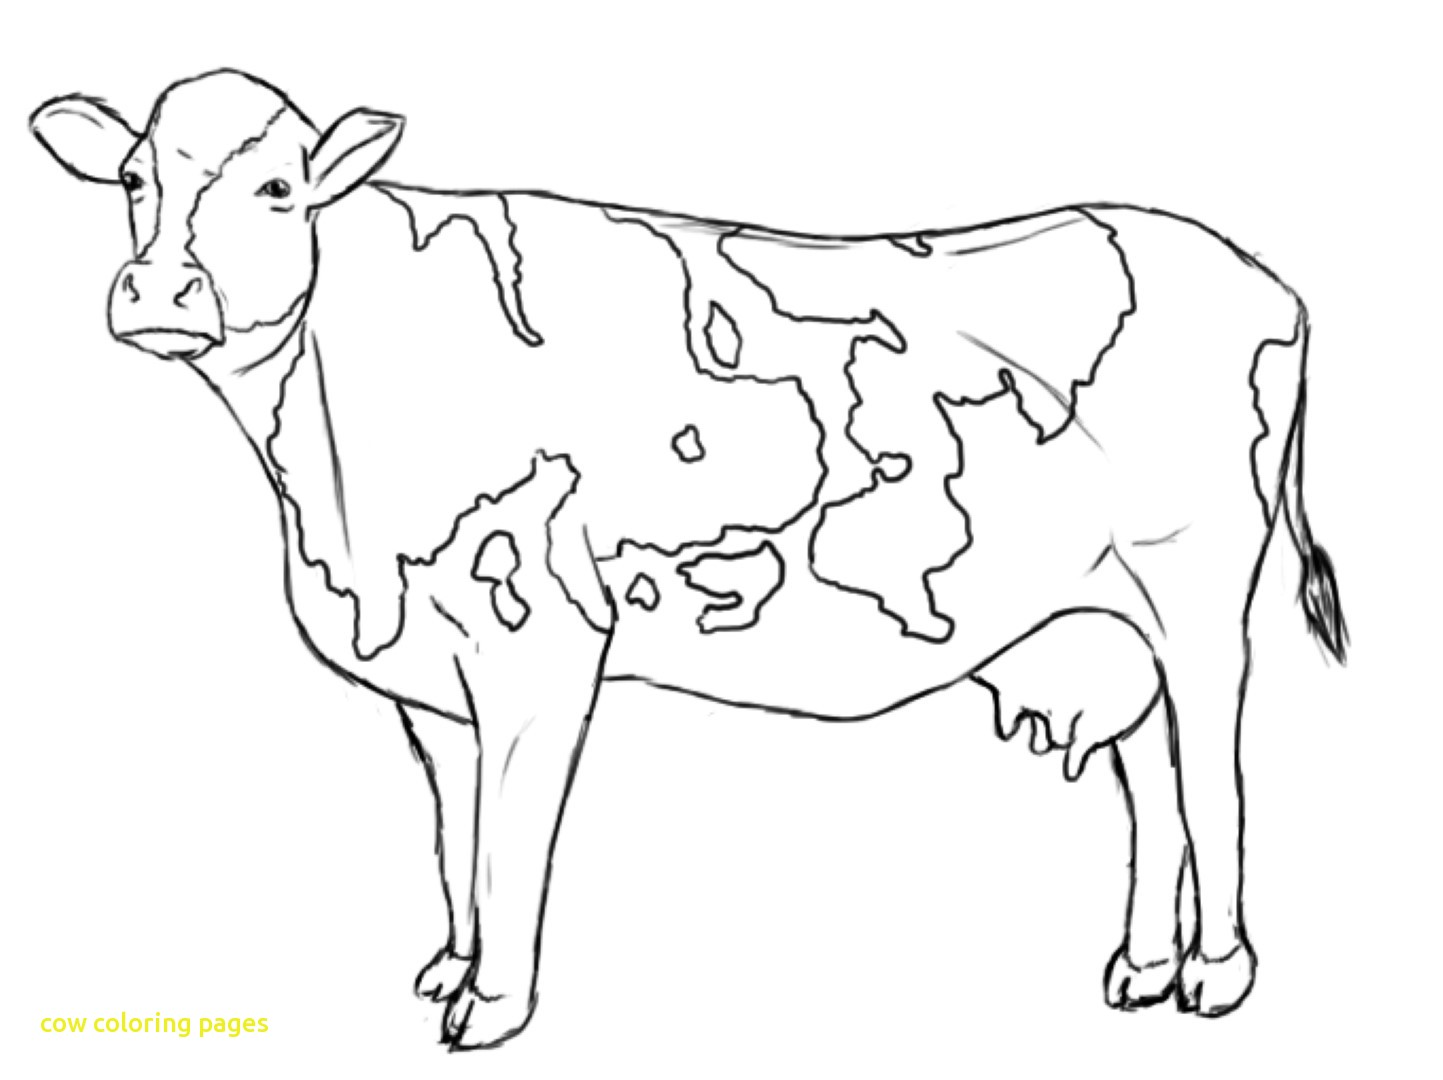 1443x1080 Cow Coloring Pages With Cow Htm Simply Simple Cow Coloring Page